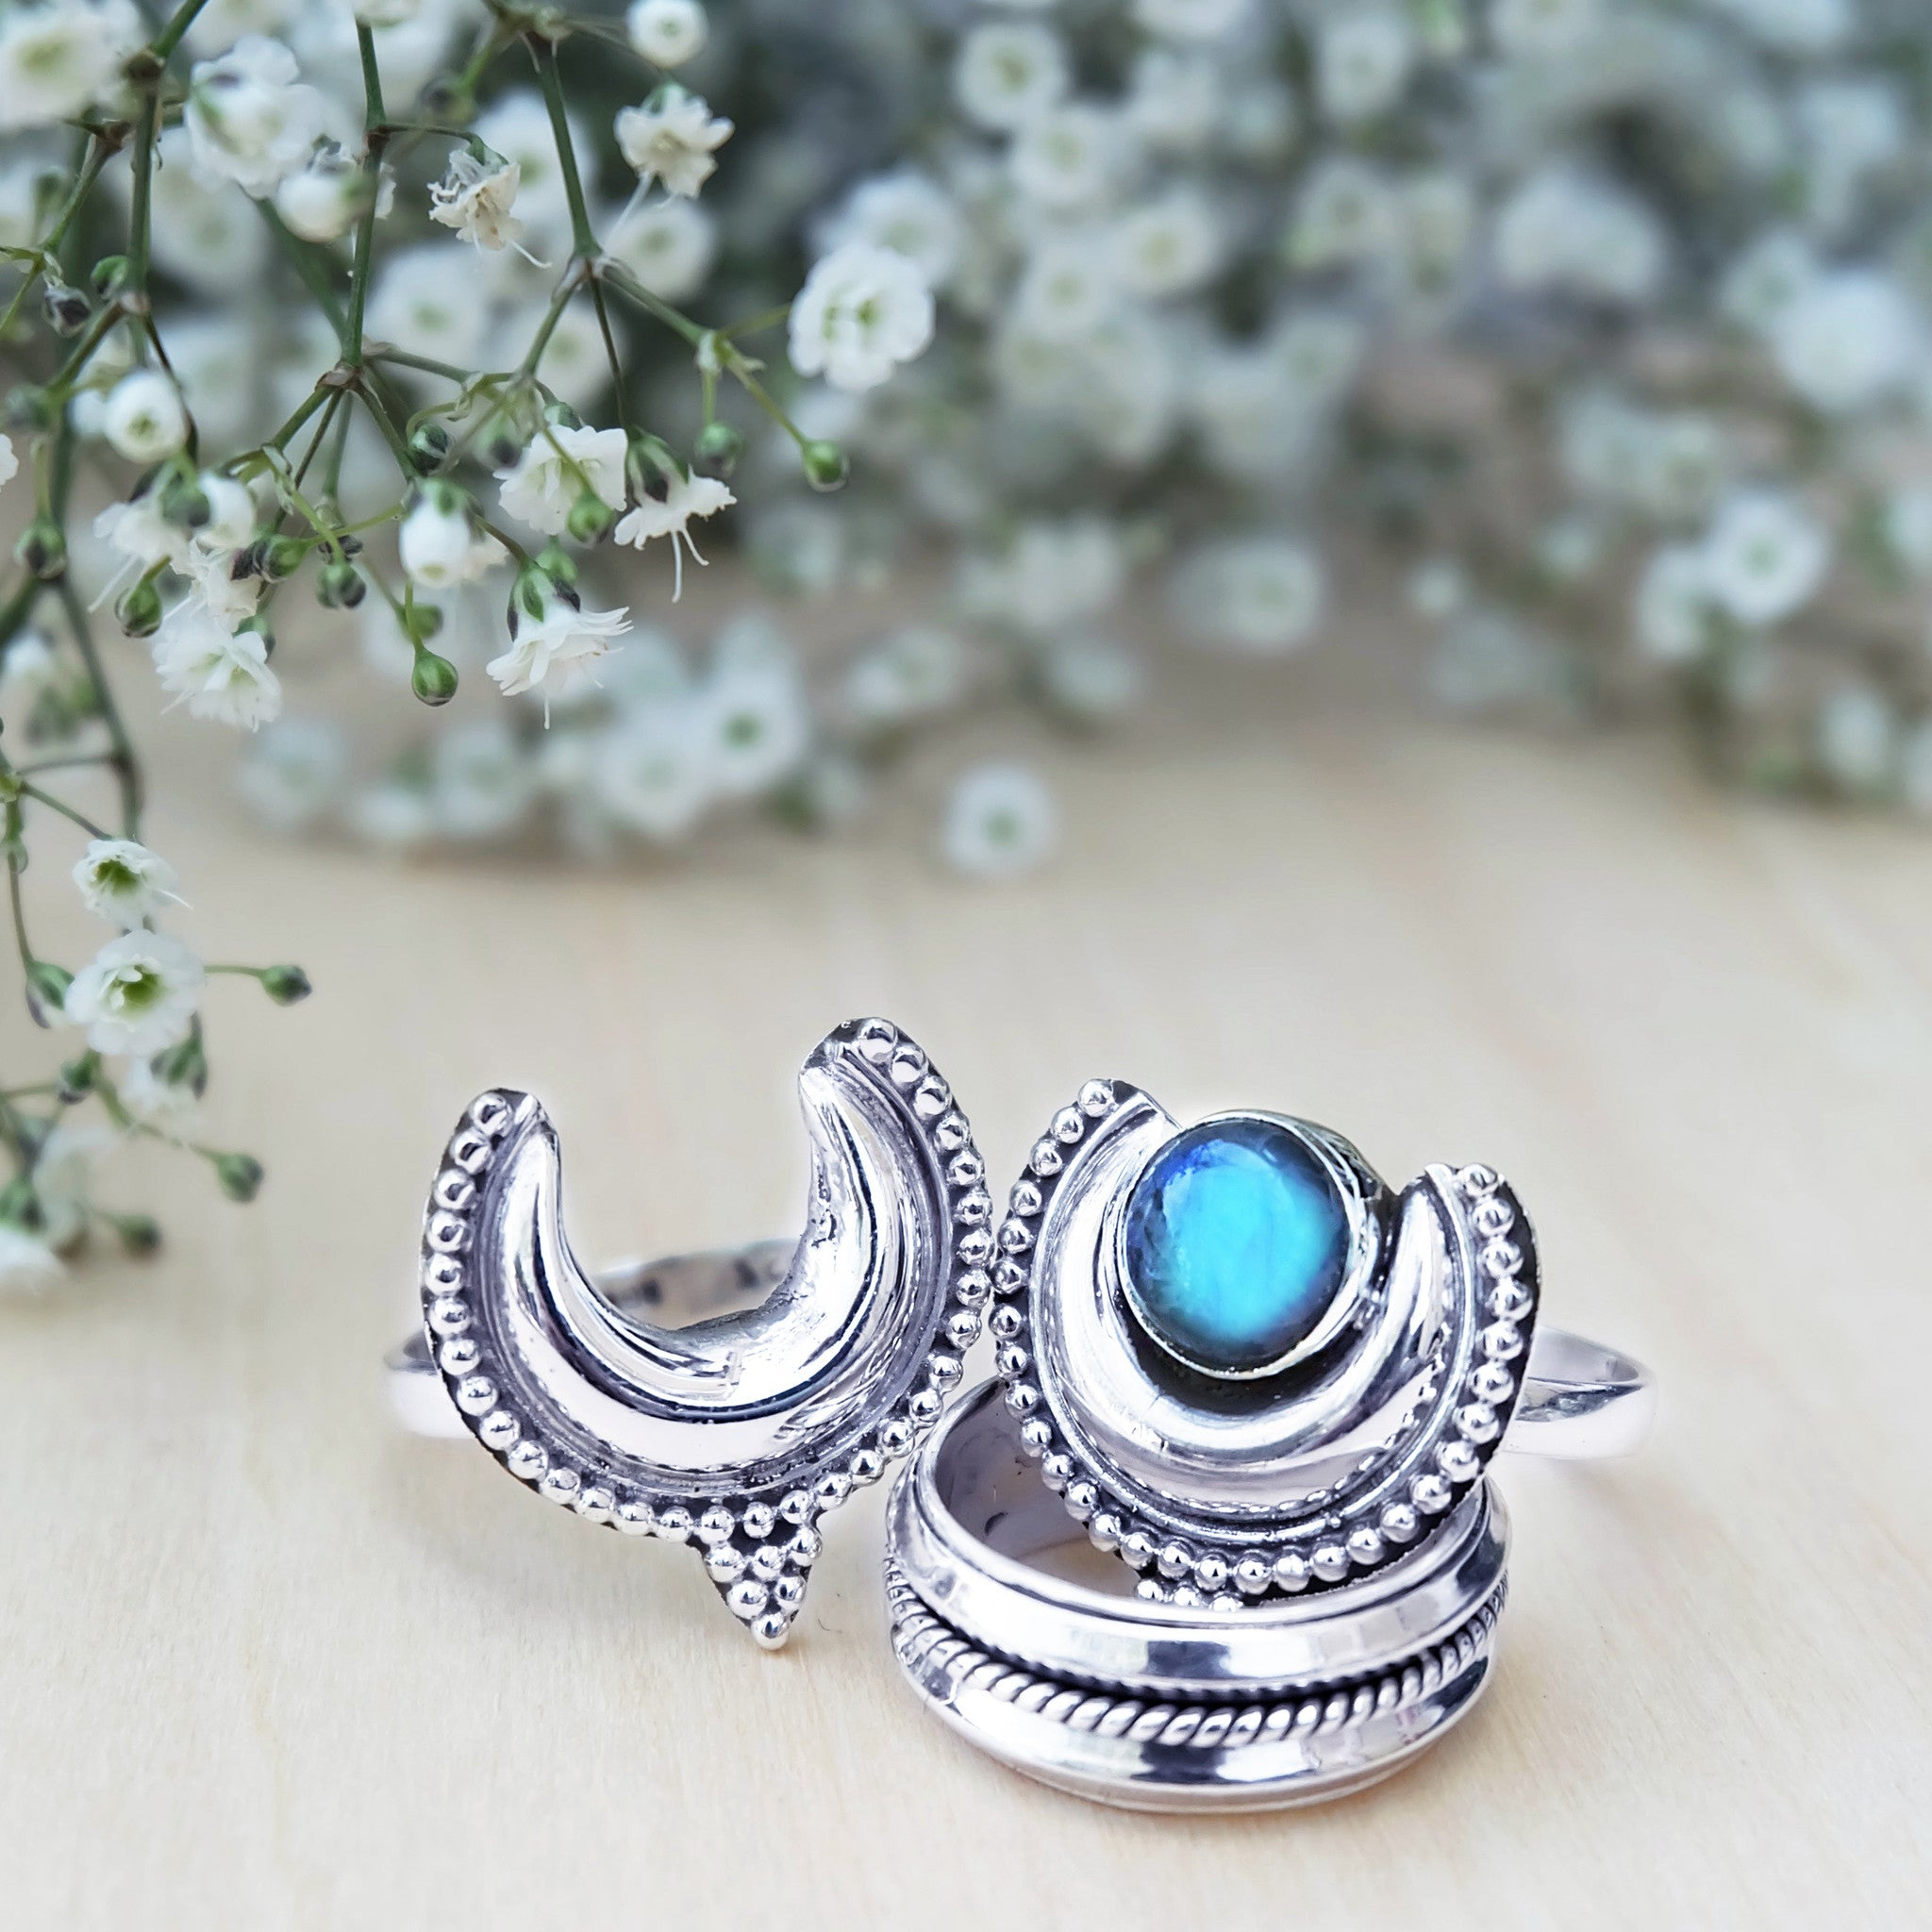 LABRADORITE CRESCENT MOON EMPRESS RING